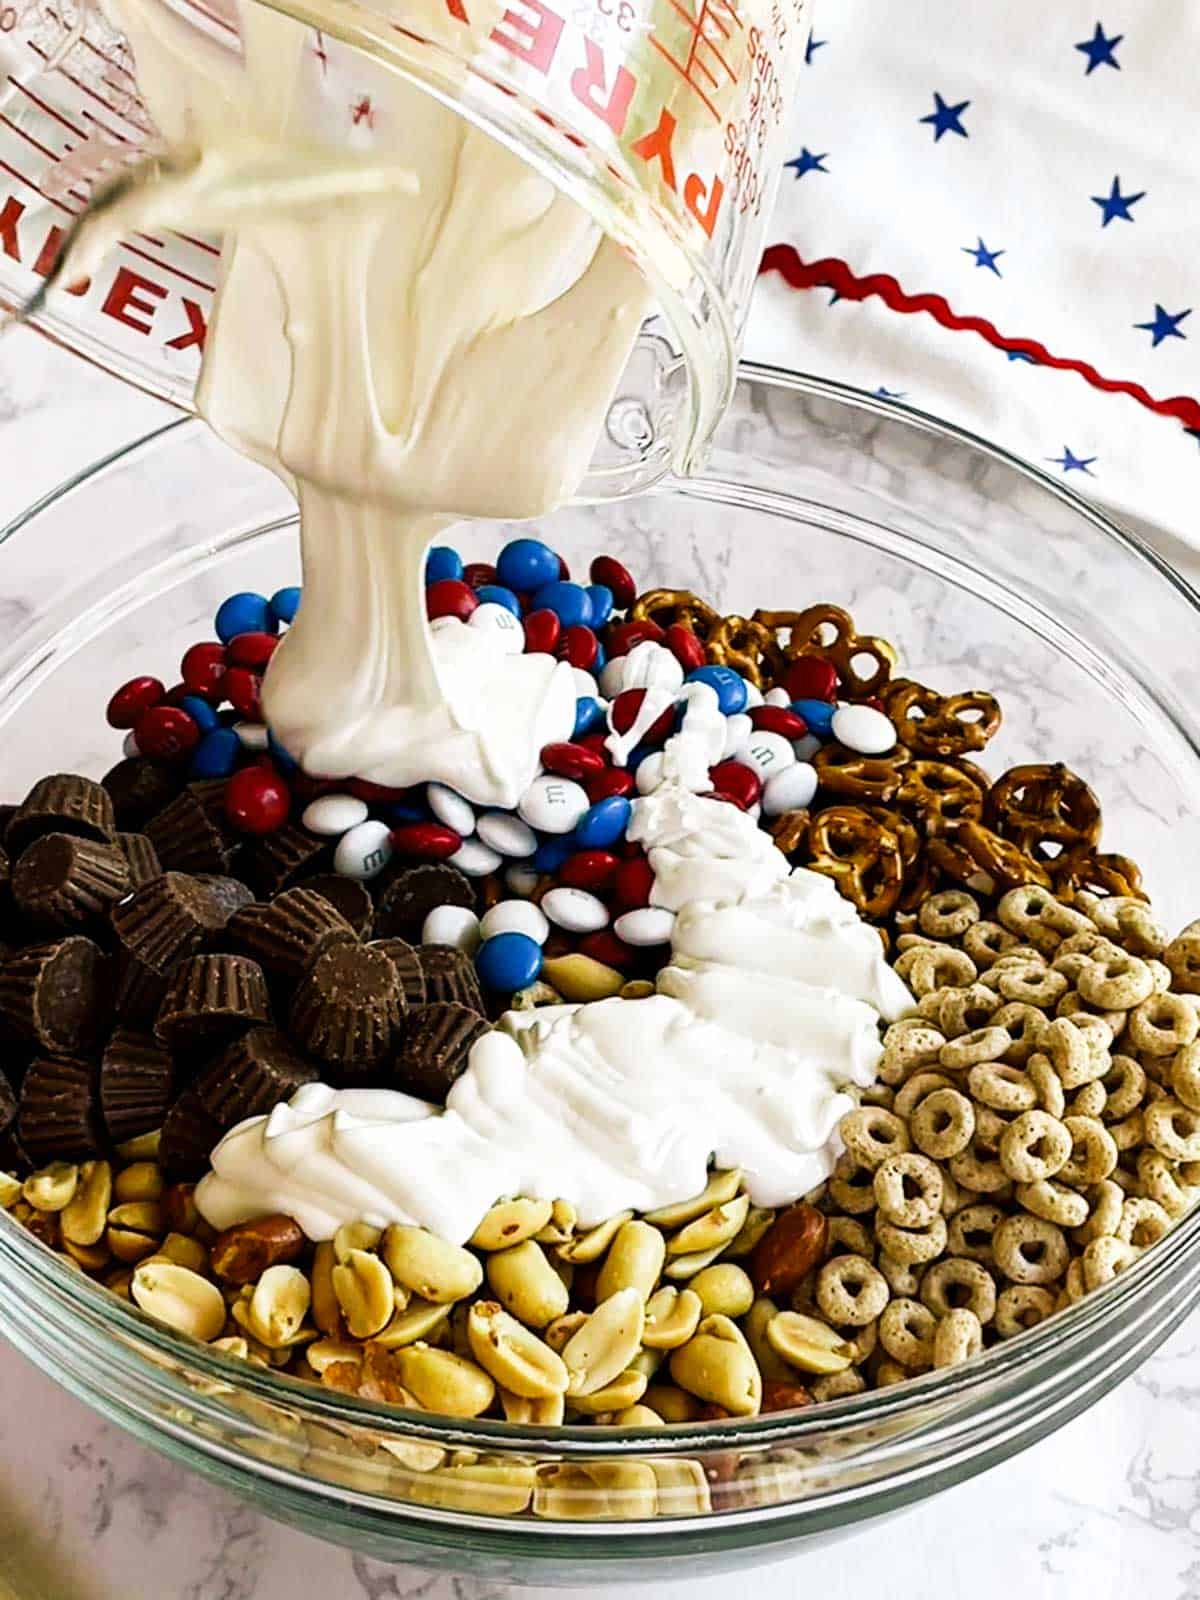 Adding melted white candy melts to snack mix ingredients.